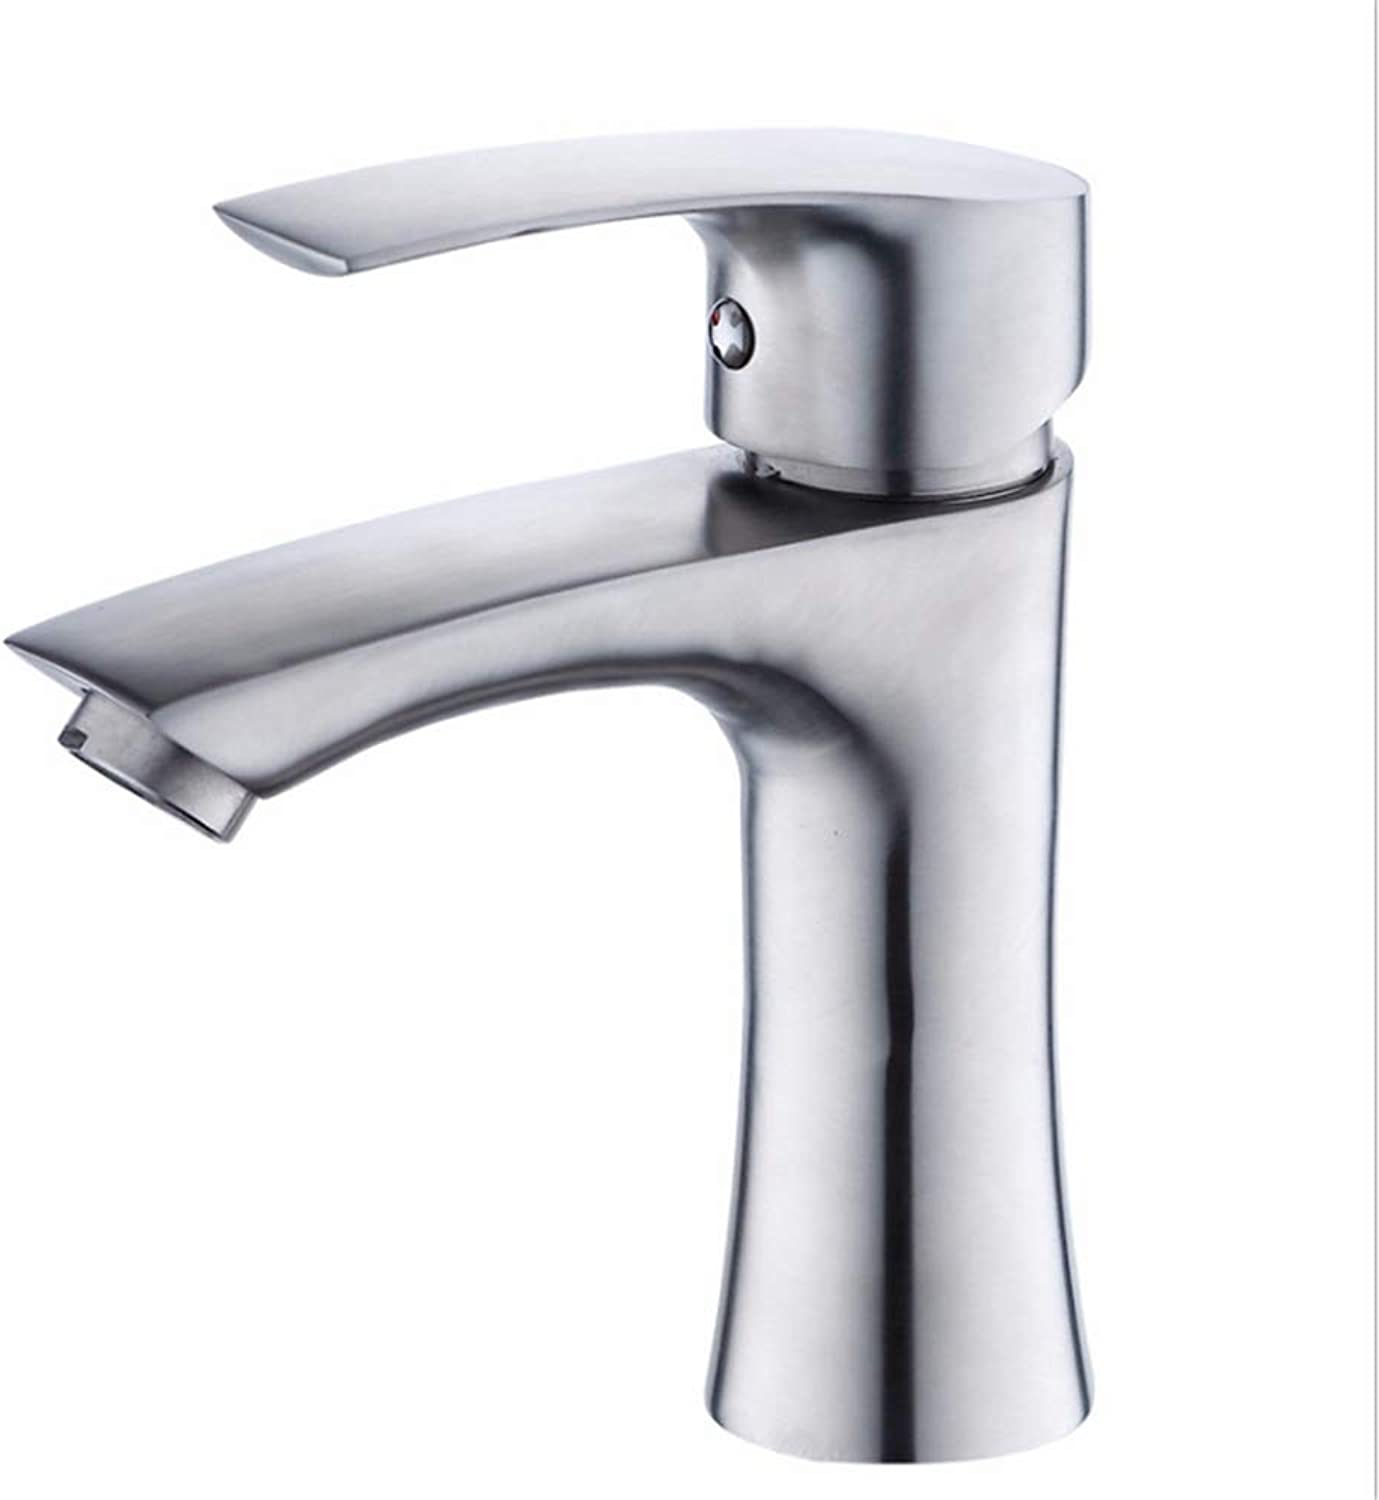 Counter Drinking Designer Arch304 Stainless Steel Faucet Cold and Hot Basin Faucet Mixed Water Valve Bathroom Faucet